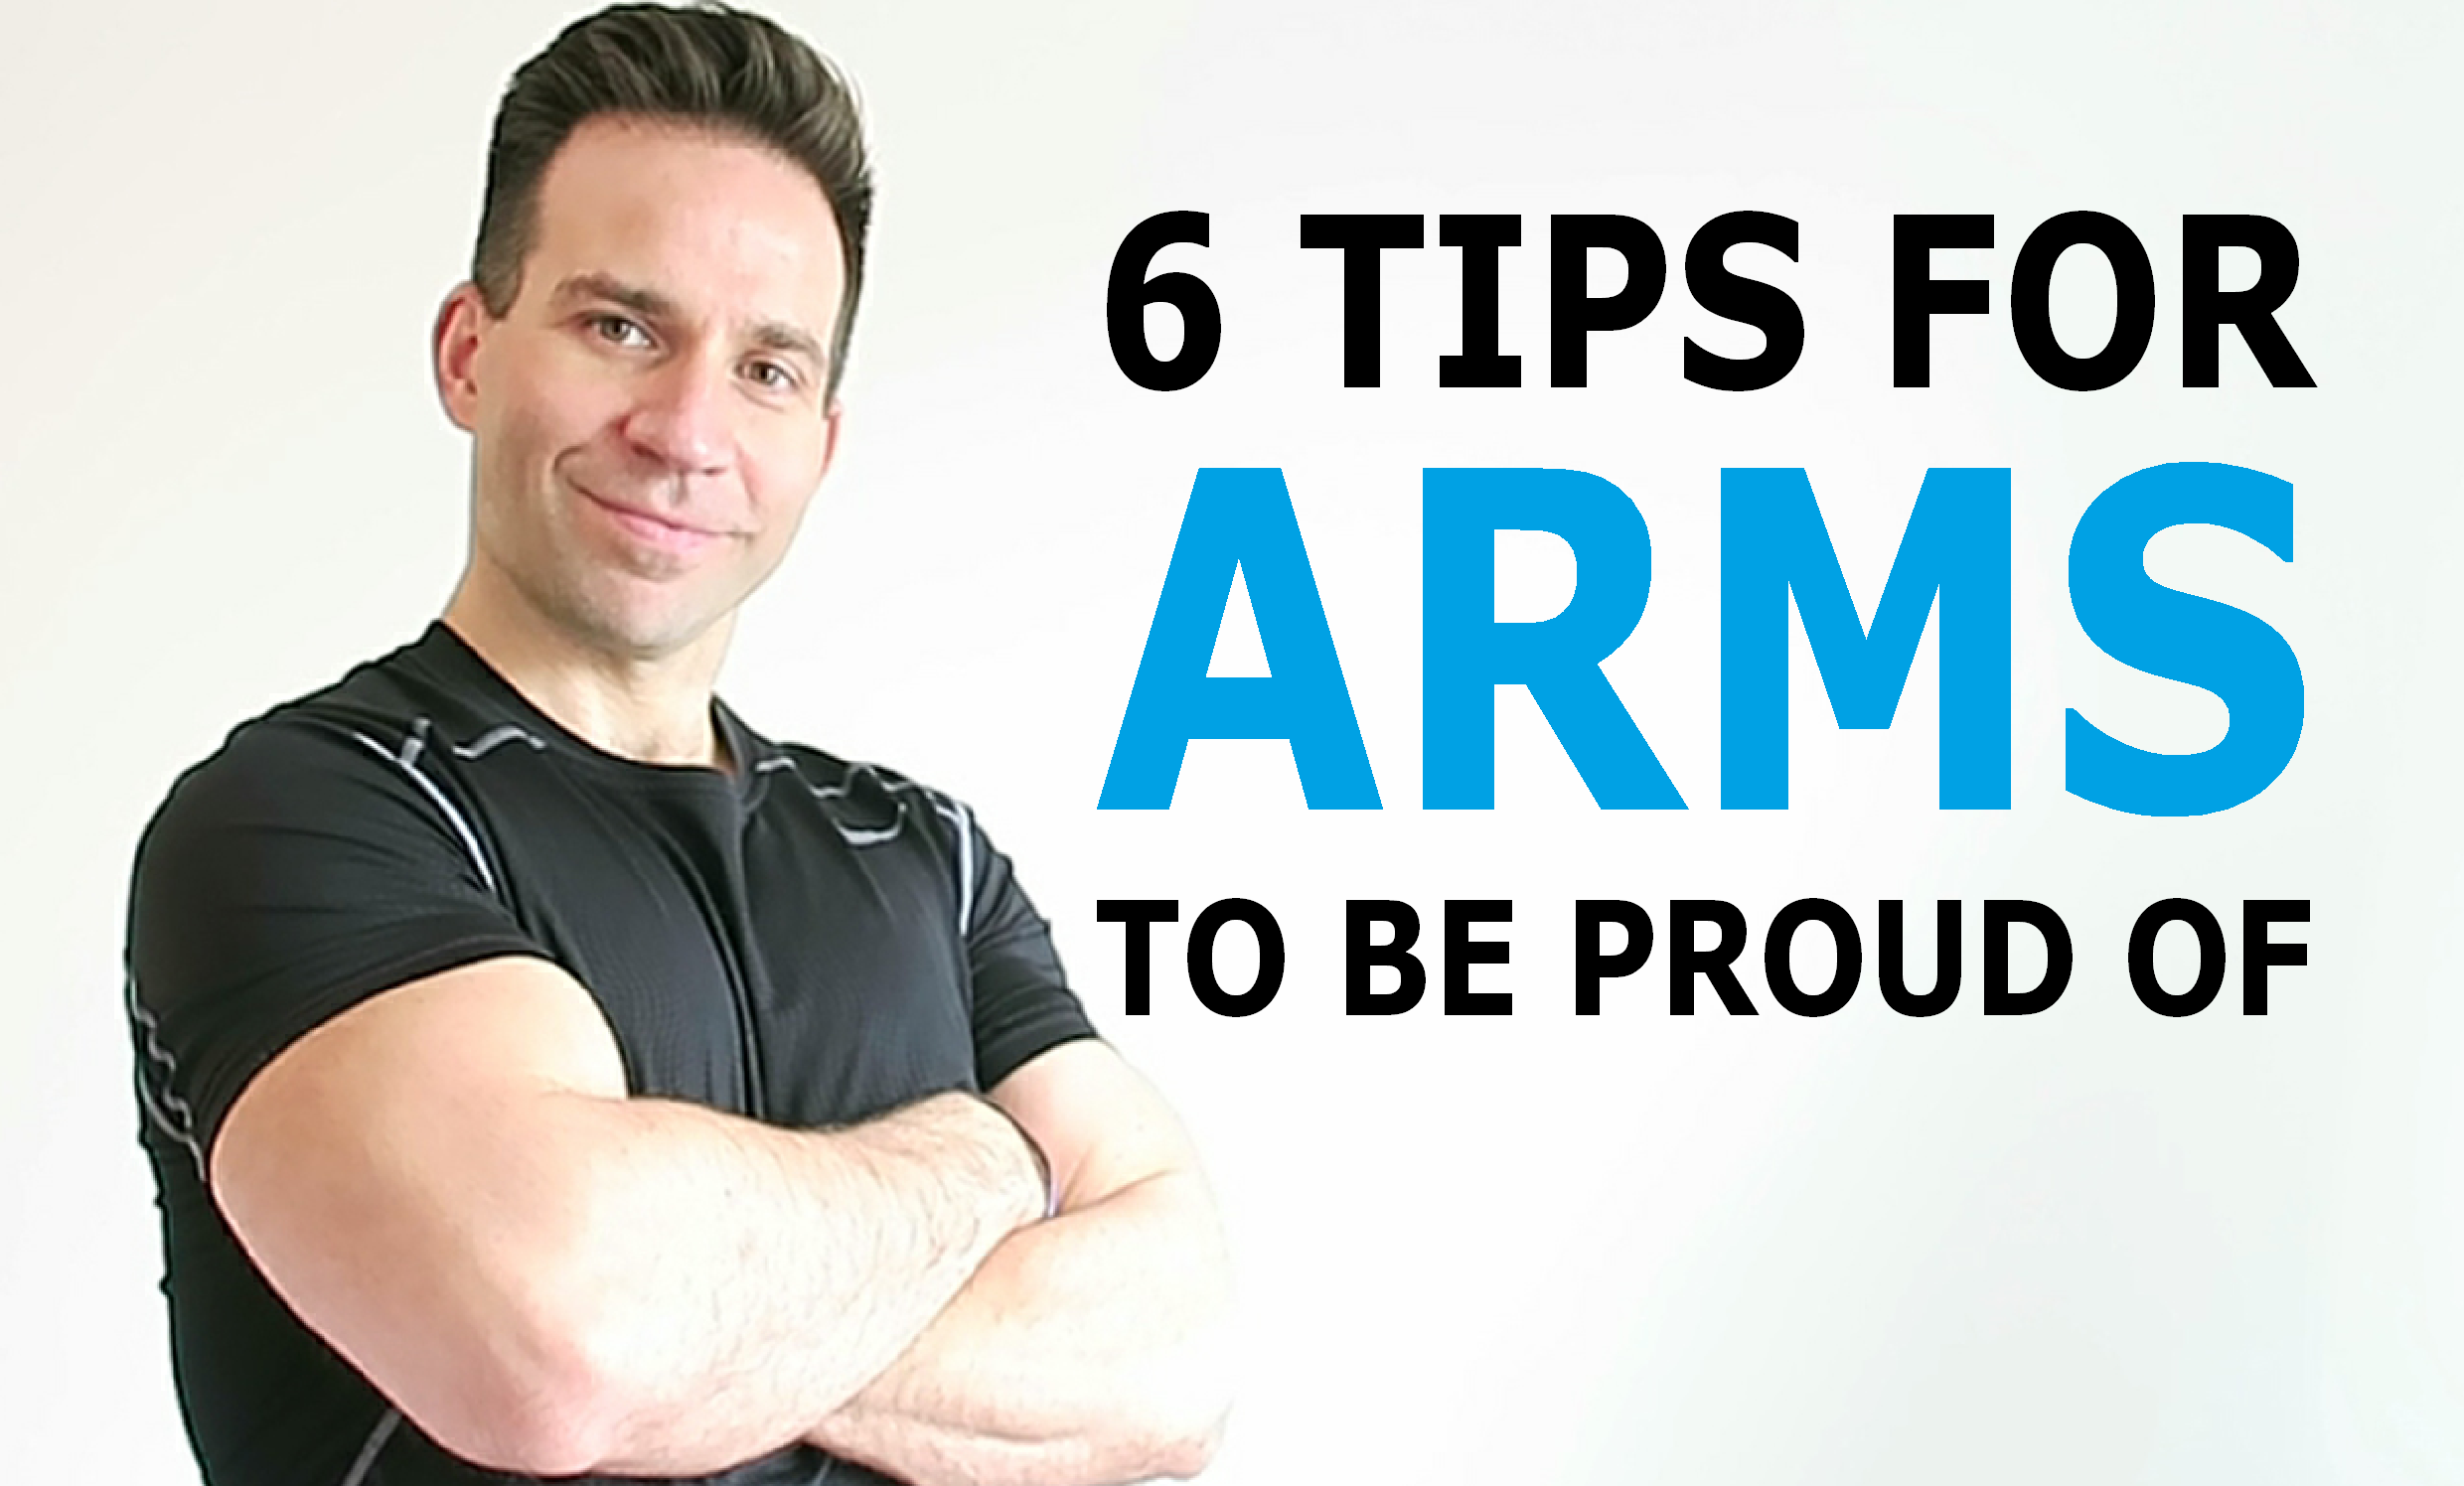 6-tips-for-arms-to-be-proud-of